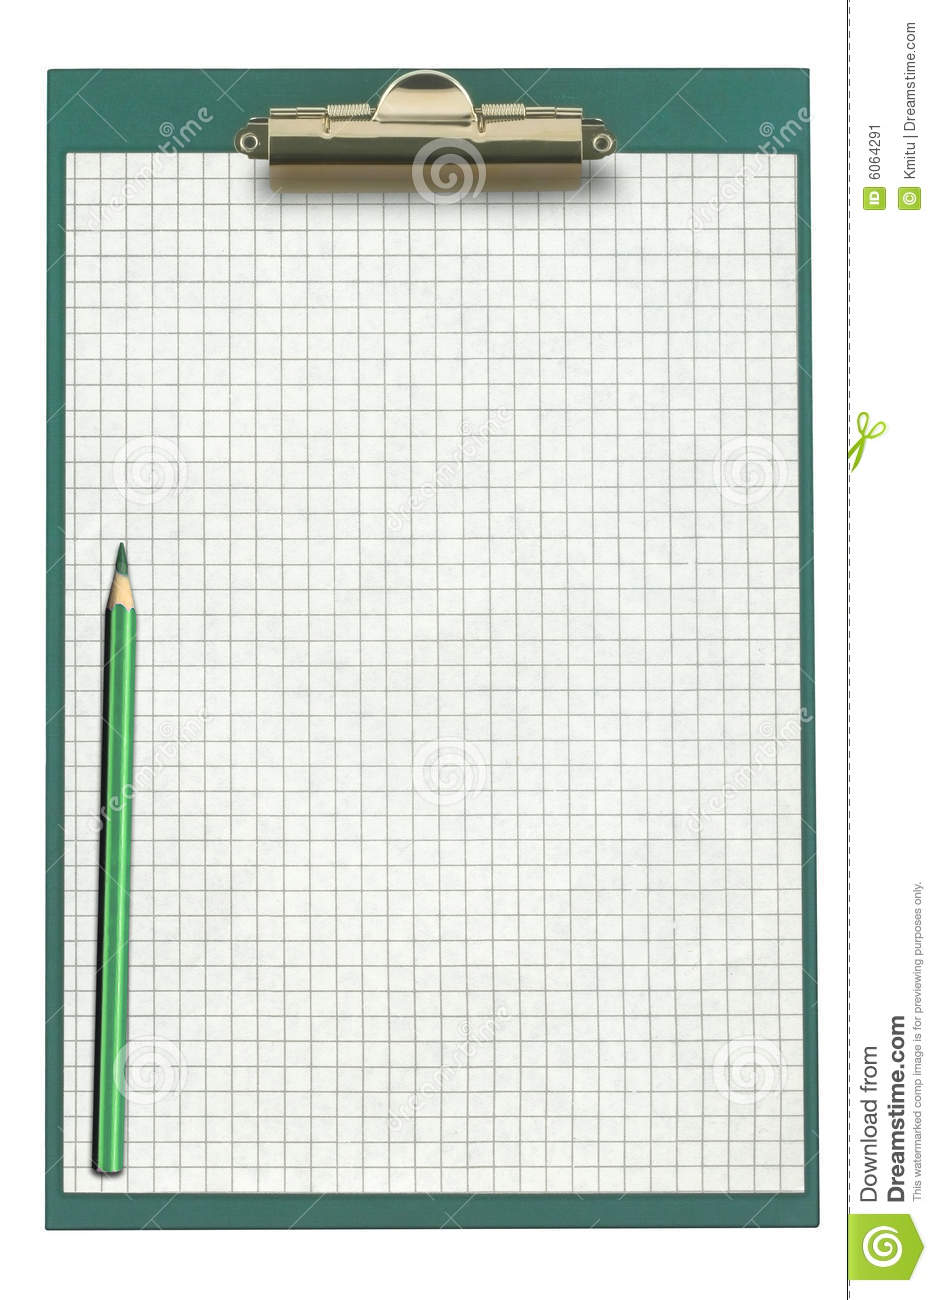 graph paper on clipboard stock image  image of spring